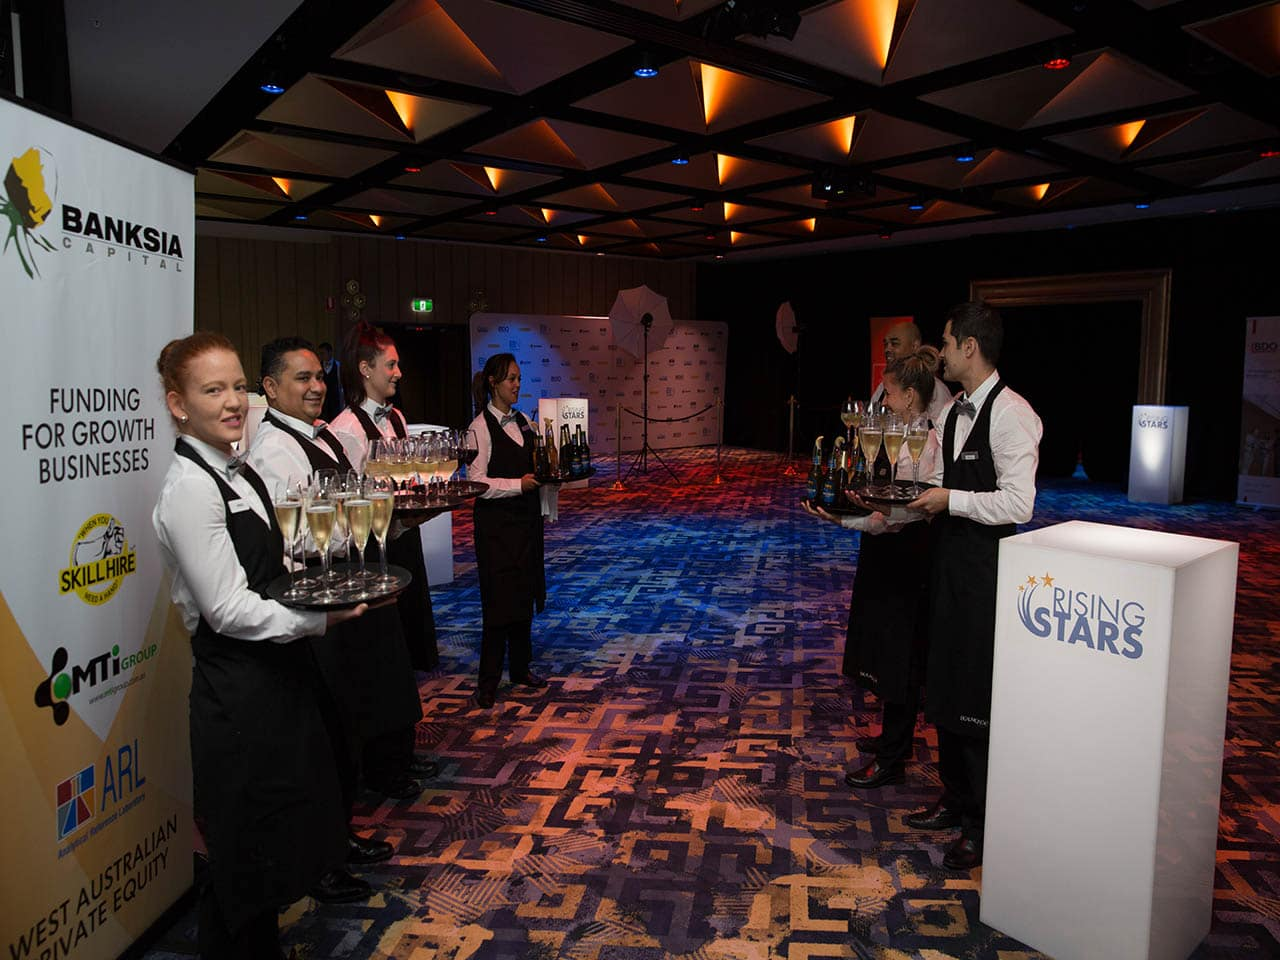 Wait Staff Waiting At The Entrance To The Function Room With Drinks For The Guests